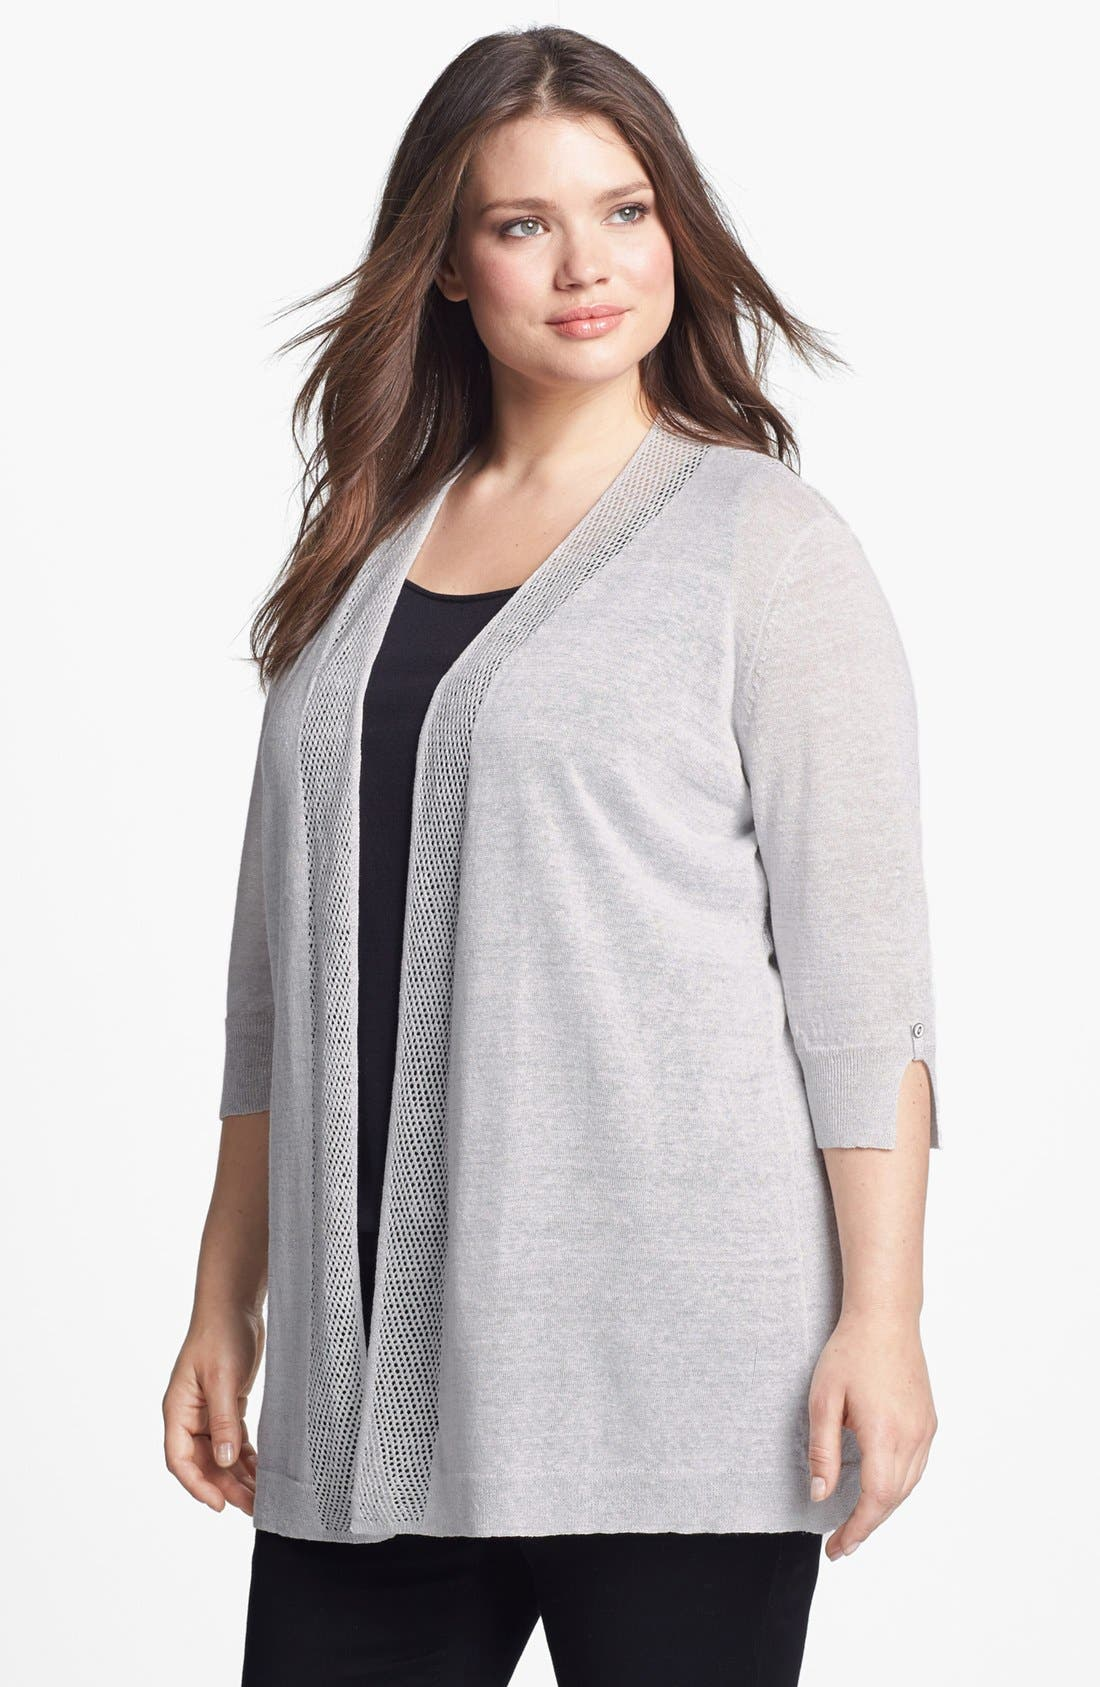 Alternate Image 1 Selected - NIC+ZOE 'Firefly' Cardigan (Plus Size)